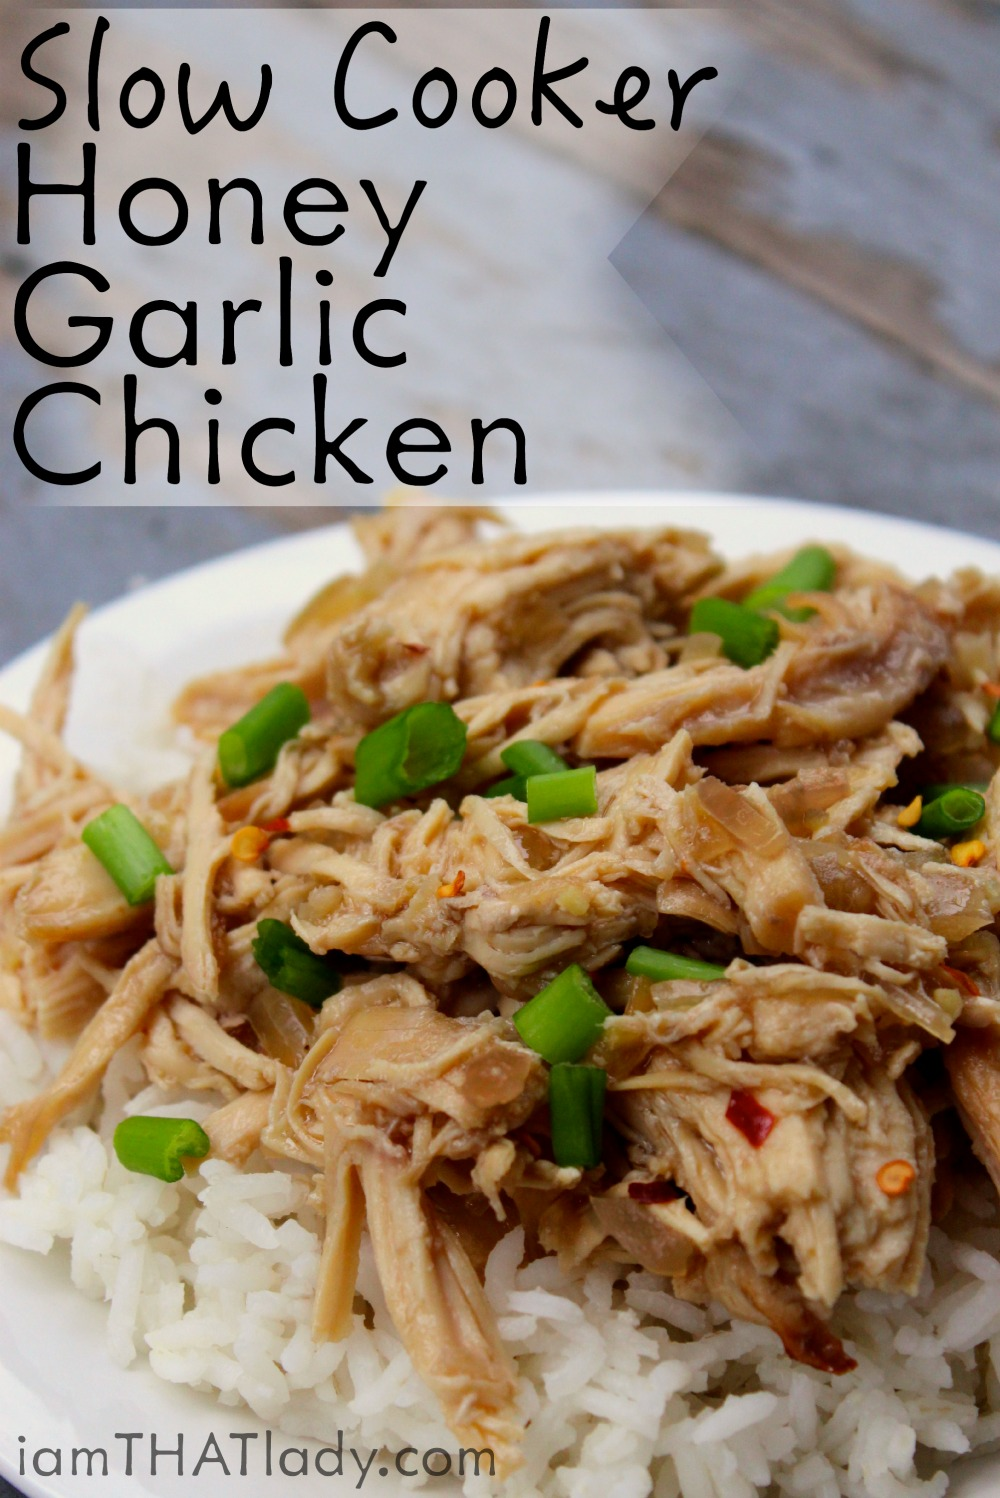 Slow cooker honey garlic chicken lauren greutman need something easy for dinner this slow cooker honey garlic chicken will be done in forumfinder Image collections